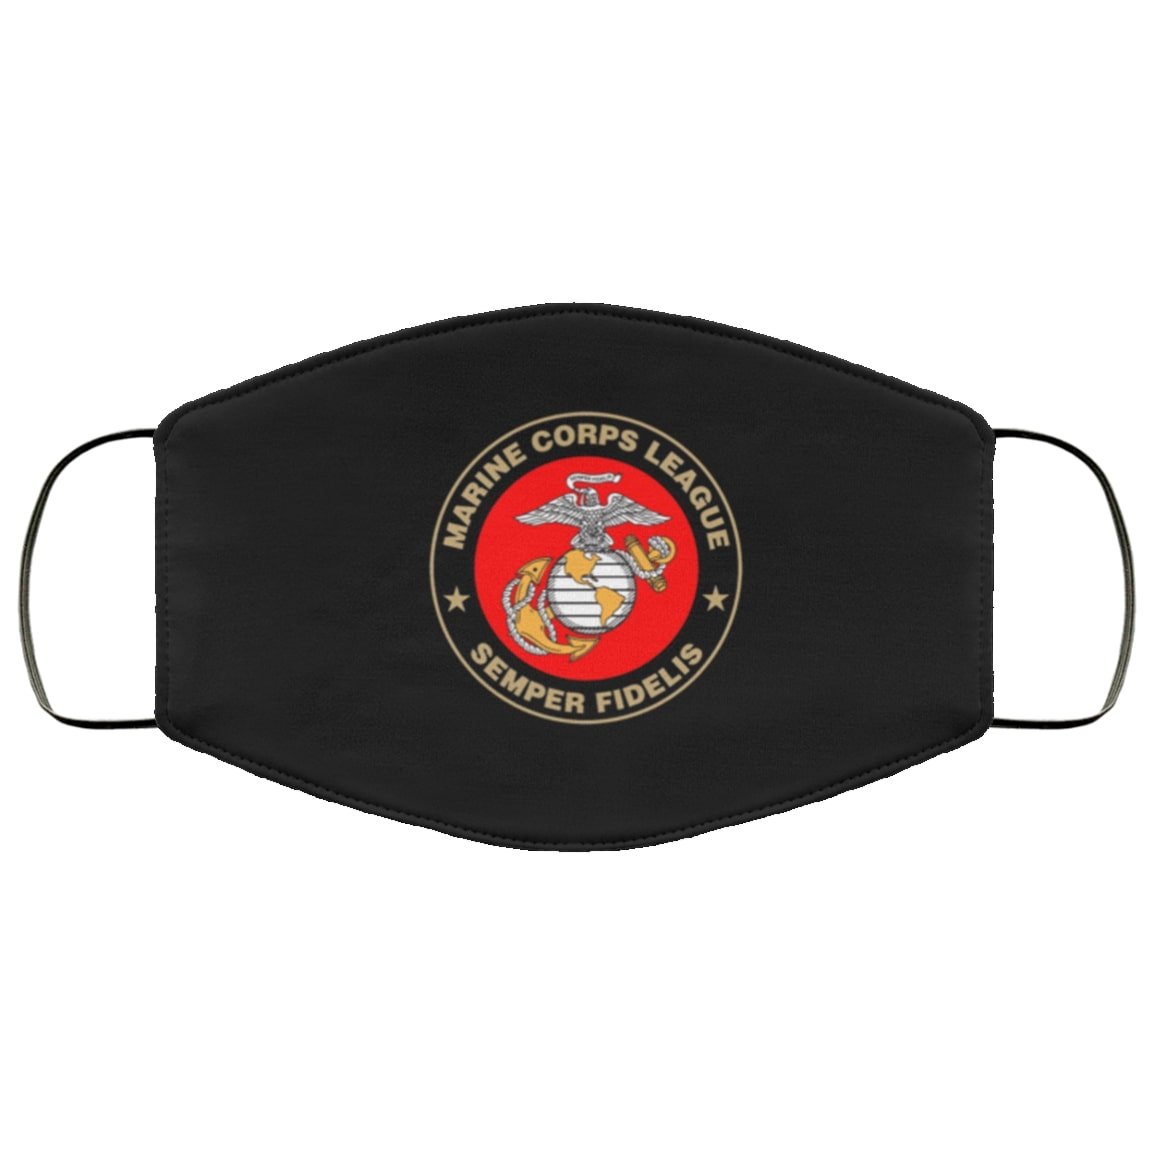 Marine corps league semper fidelis all over printed face mask 1